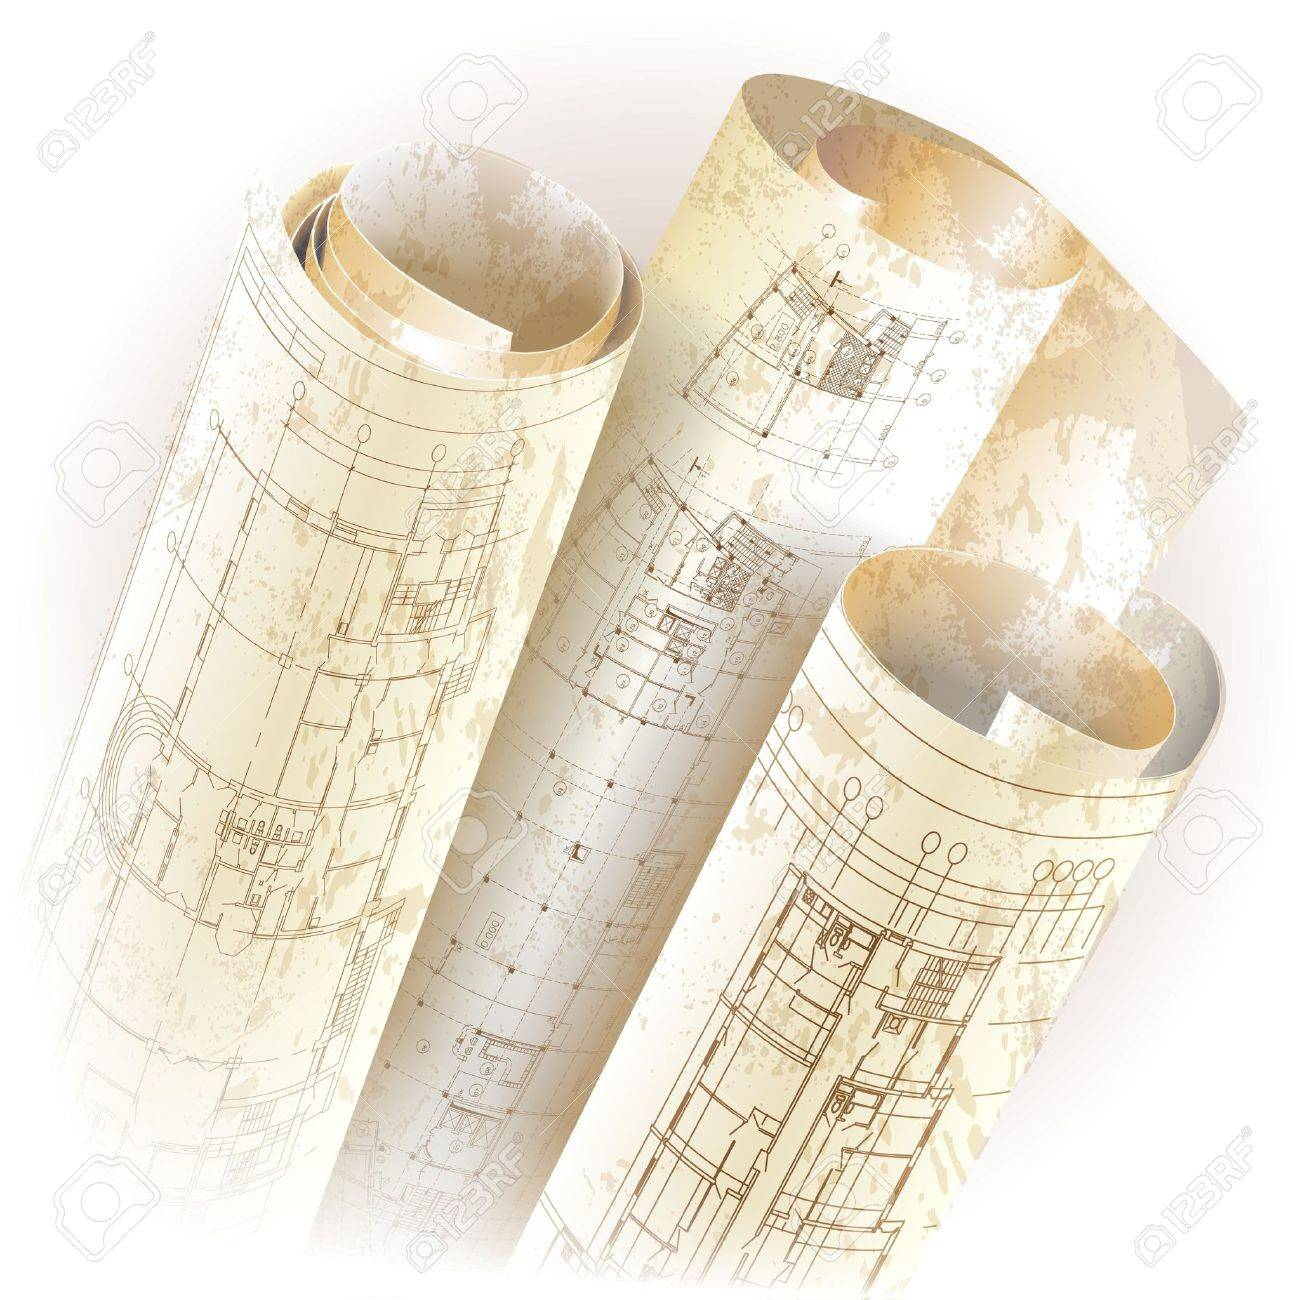 Architecture Blueprints Art blueprint diagram images & stock pictures. royalty free blueprint